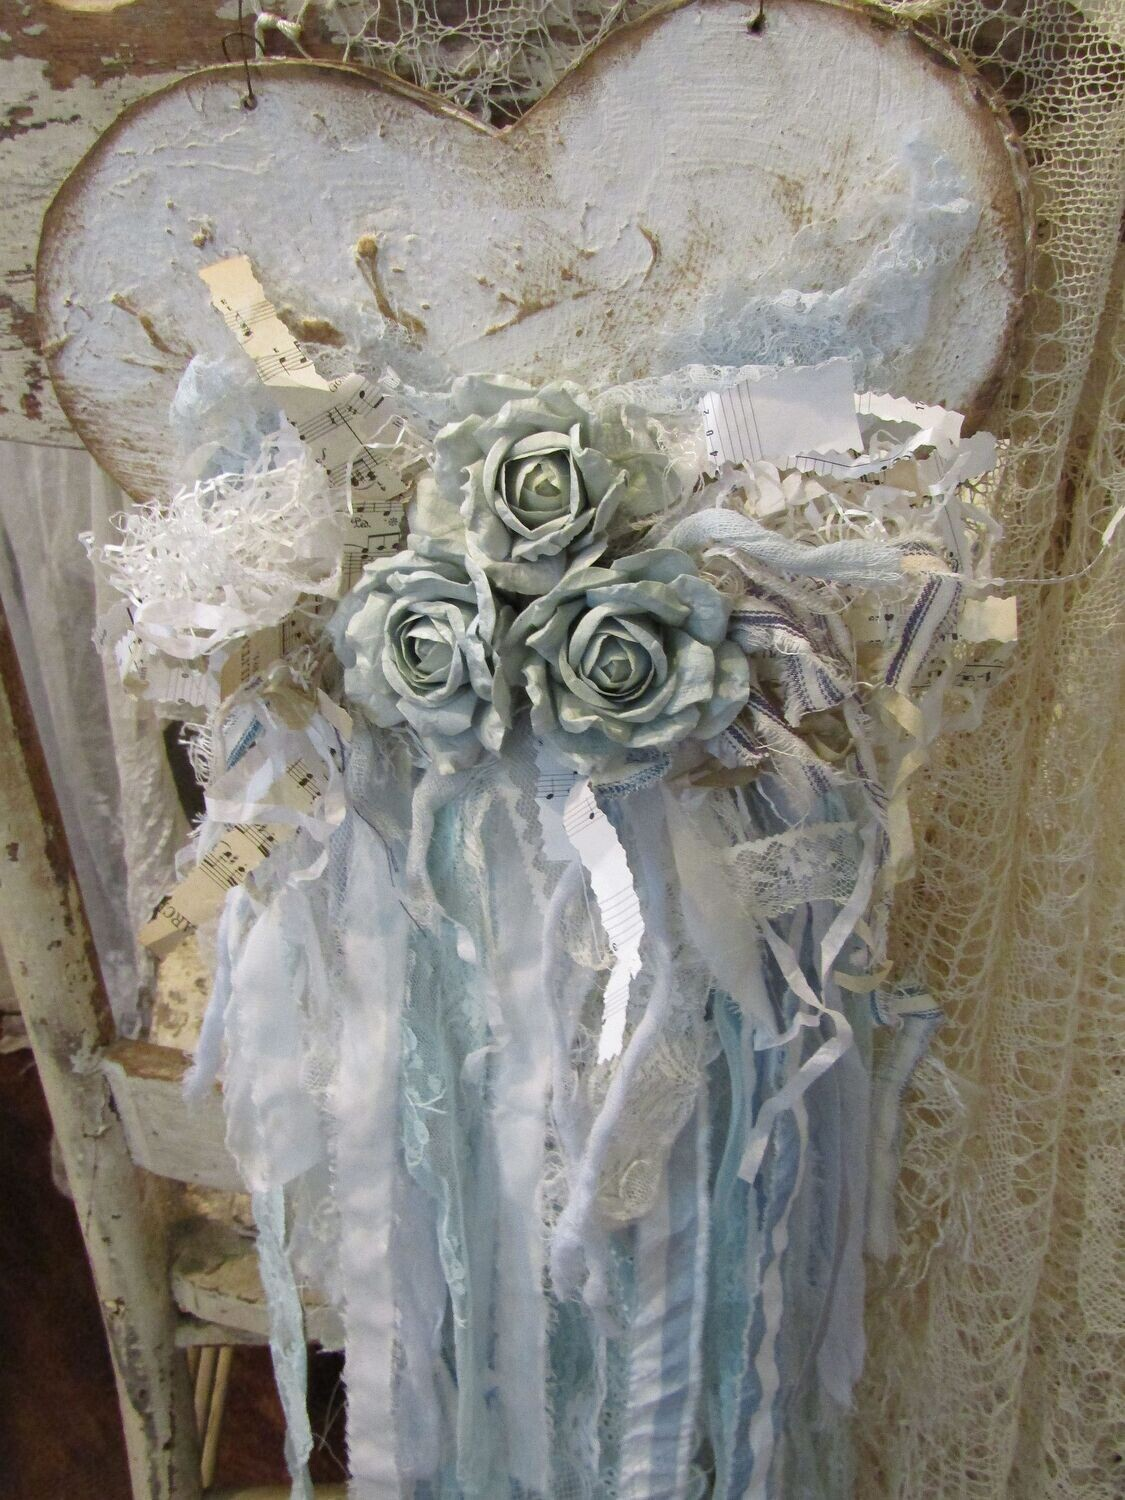 Shabby wall hanging handmade distressed heart filled with faded blue roses lace and shredded music sheets